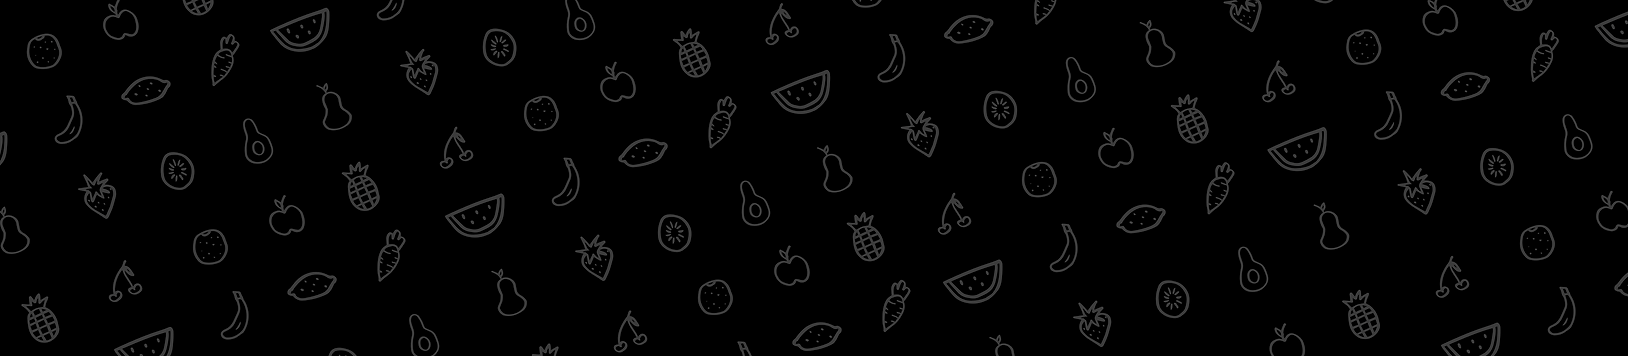 footer background 2.png